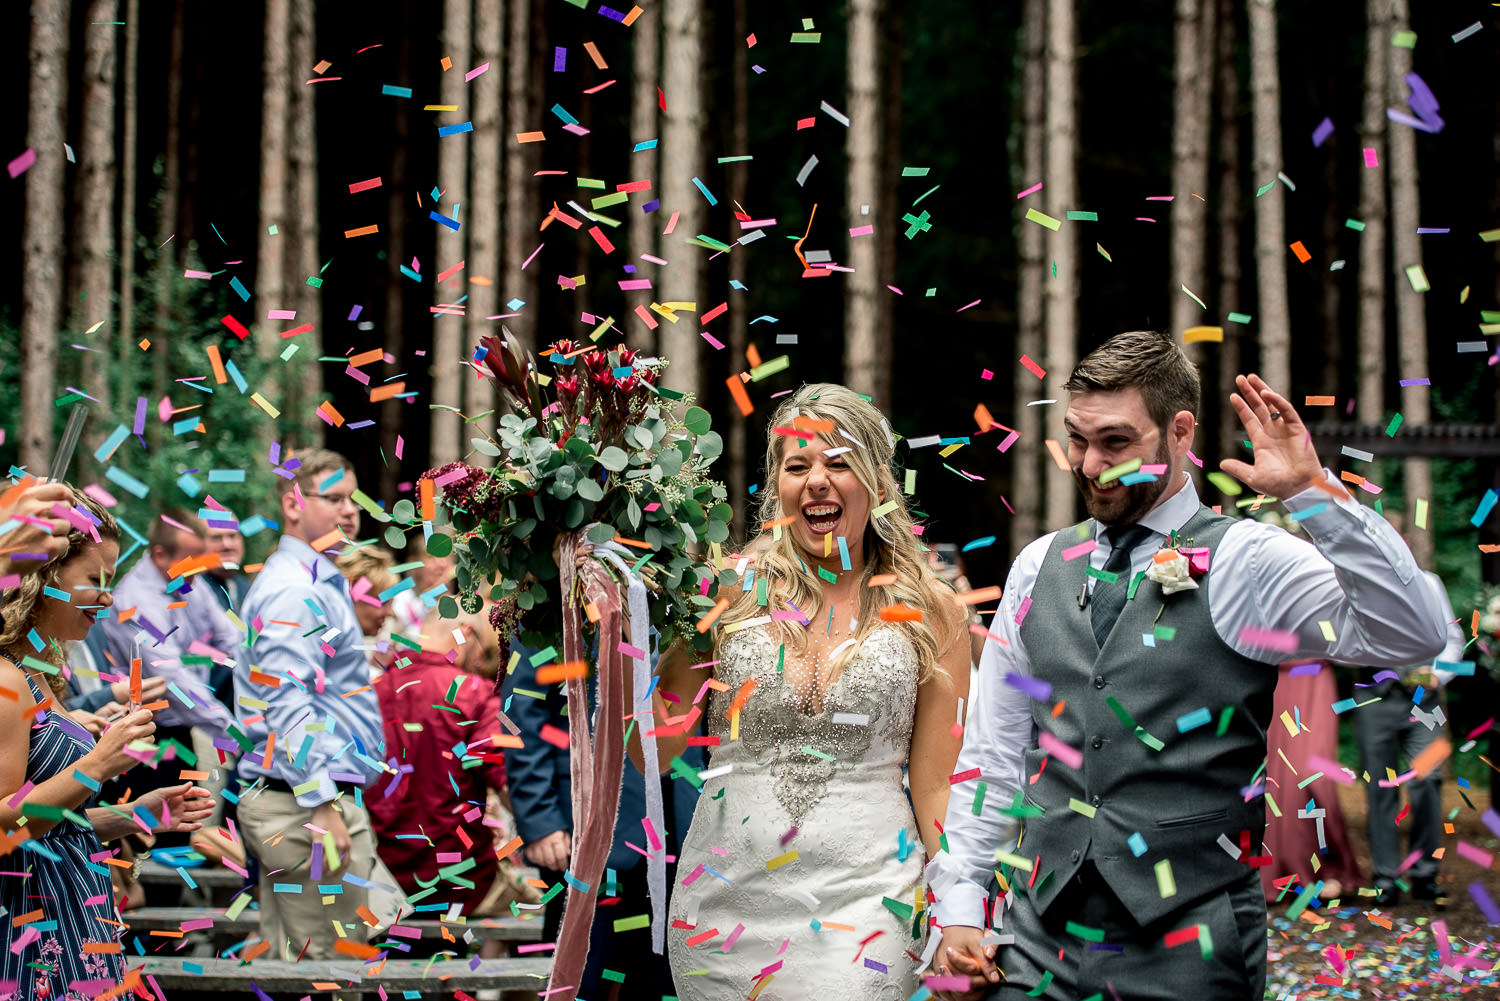 wedding guests throwing confetti as bride and groom exit wooded outdoor ceremony site